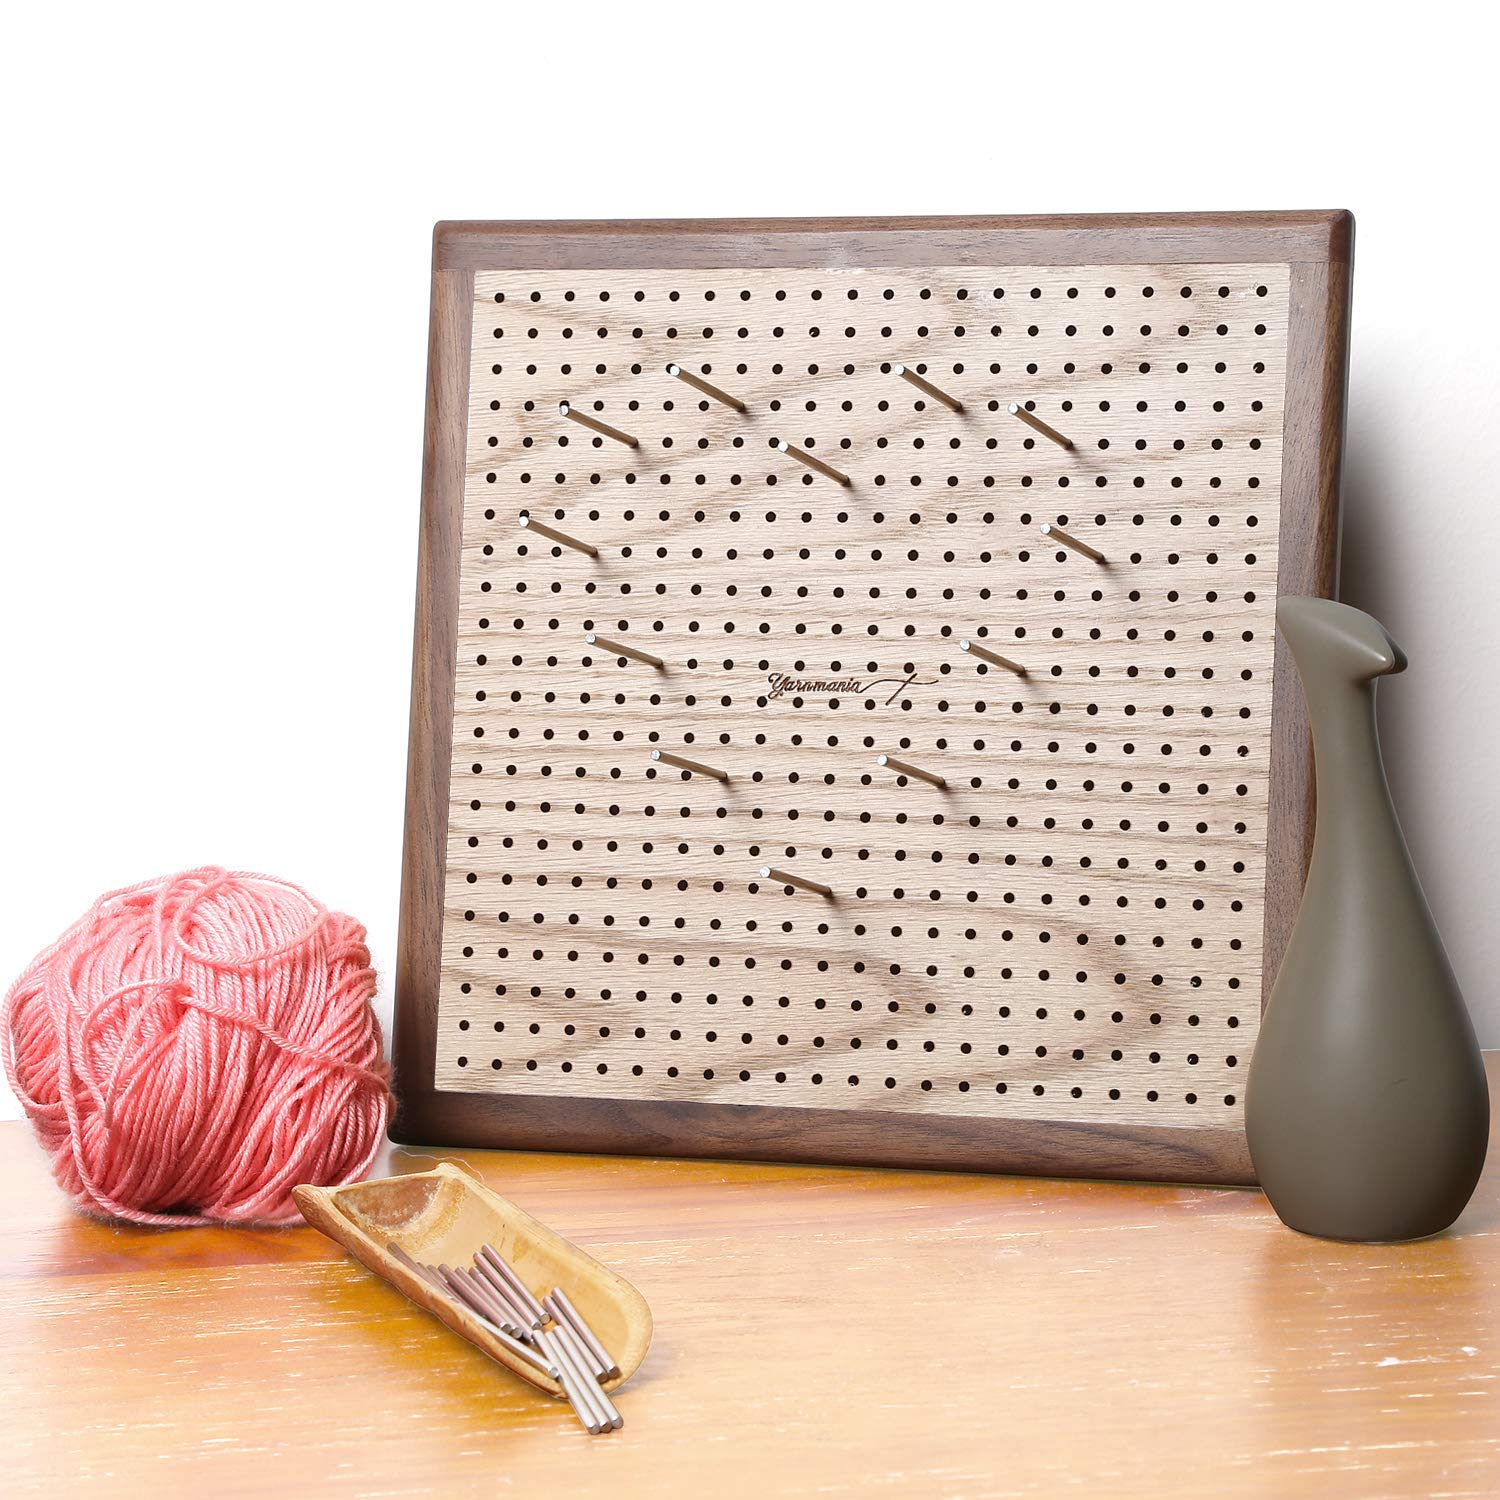 Yarn Mania - Premium Blocking Boards for Knitting with Grids - Handcrafted Wood Crochet Blocking Board with 20 Stainless Steel Pins (9 inches)